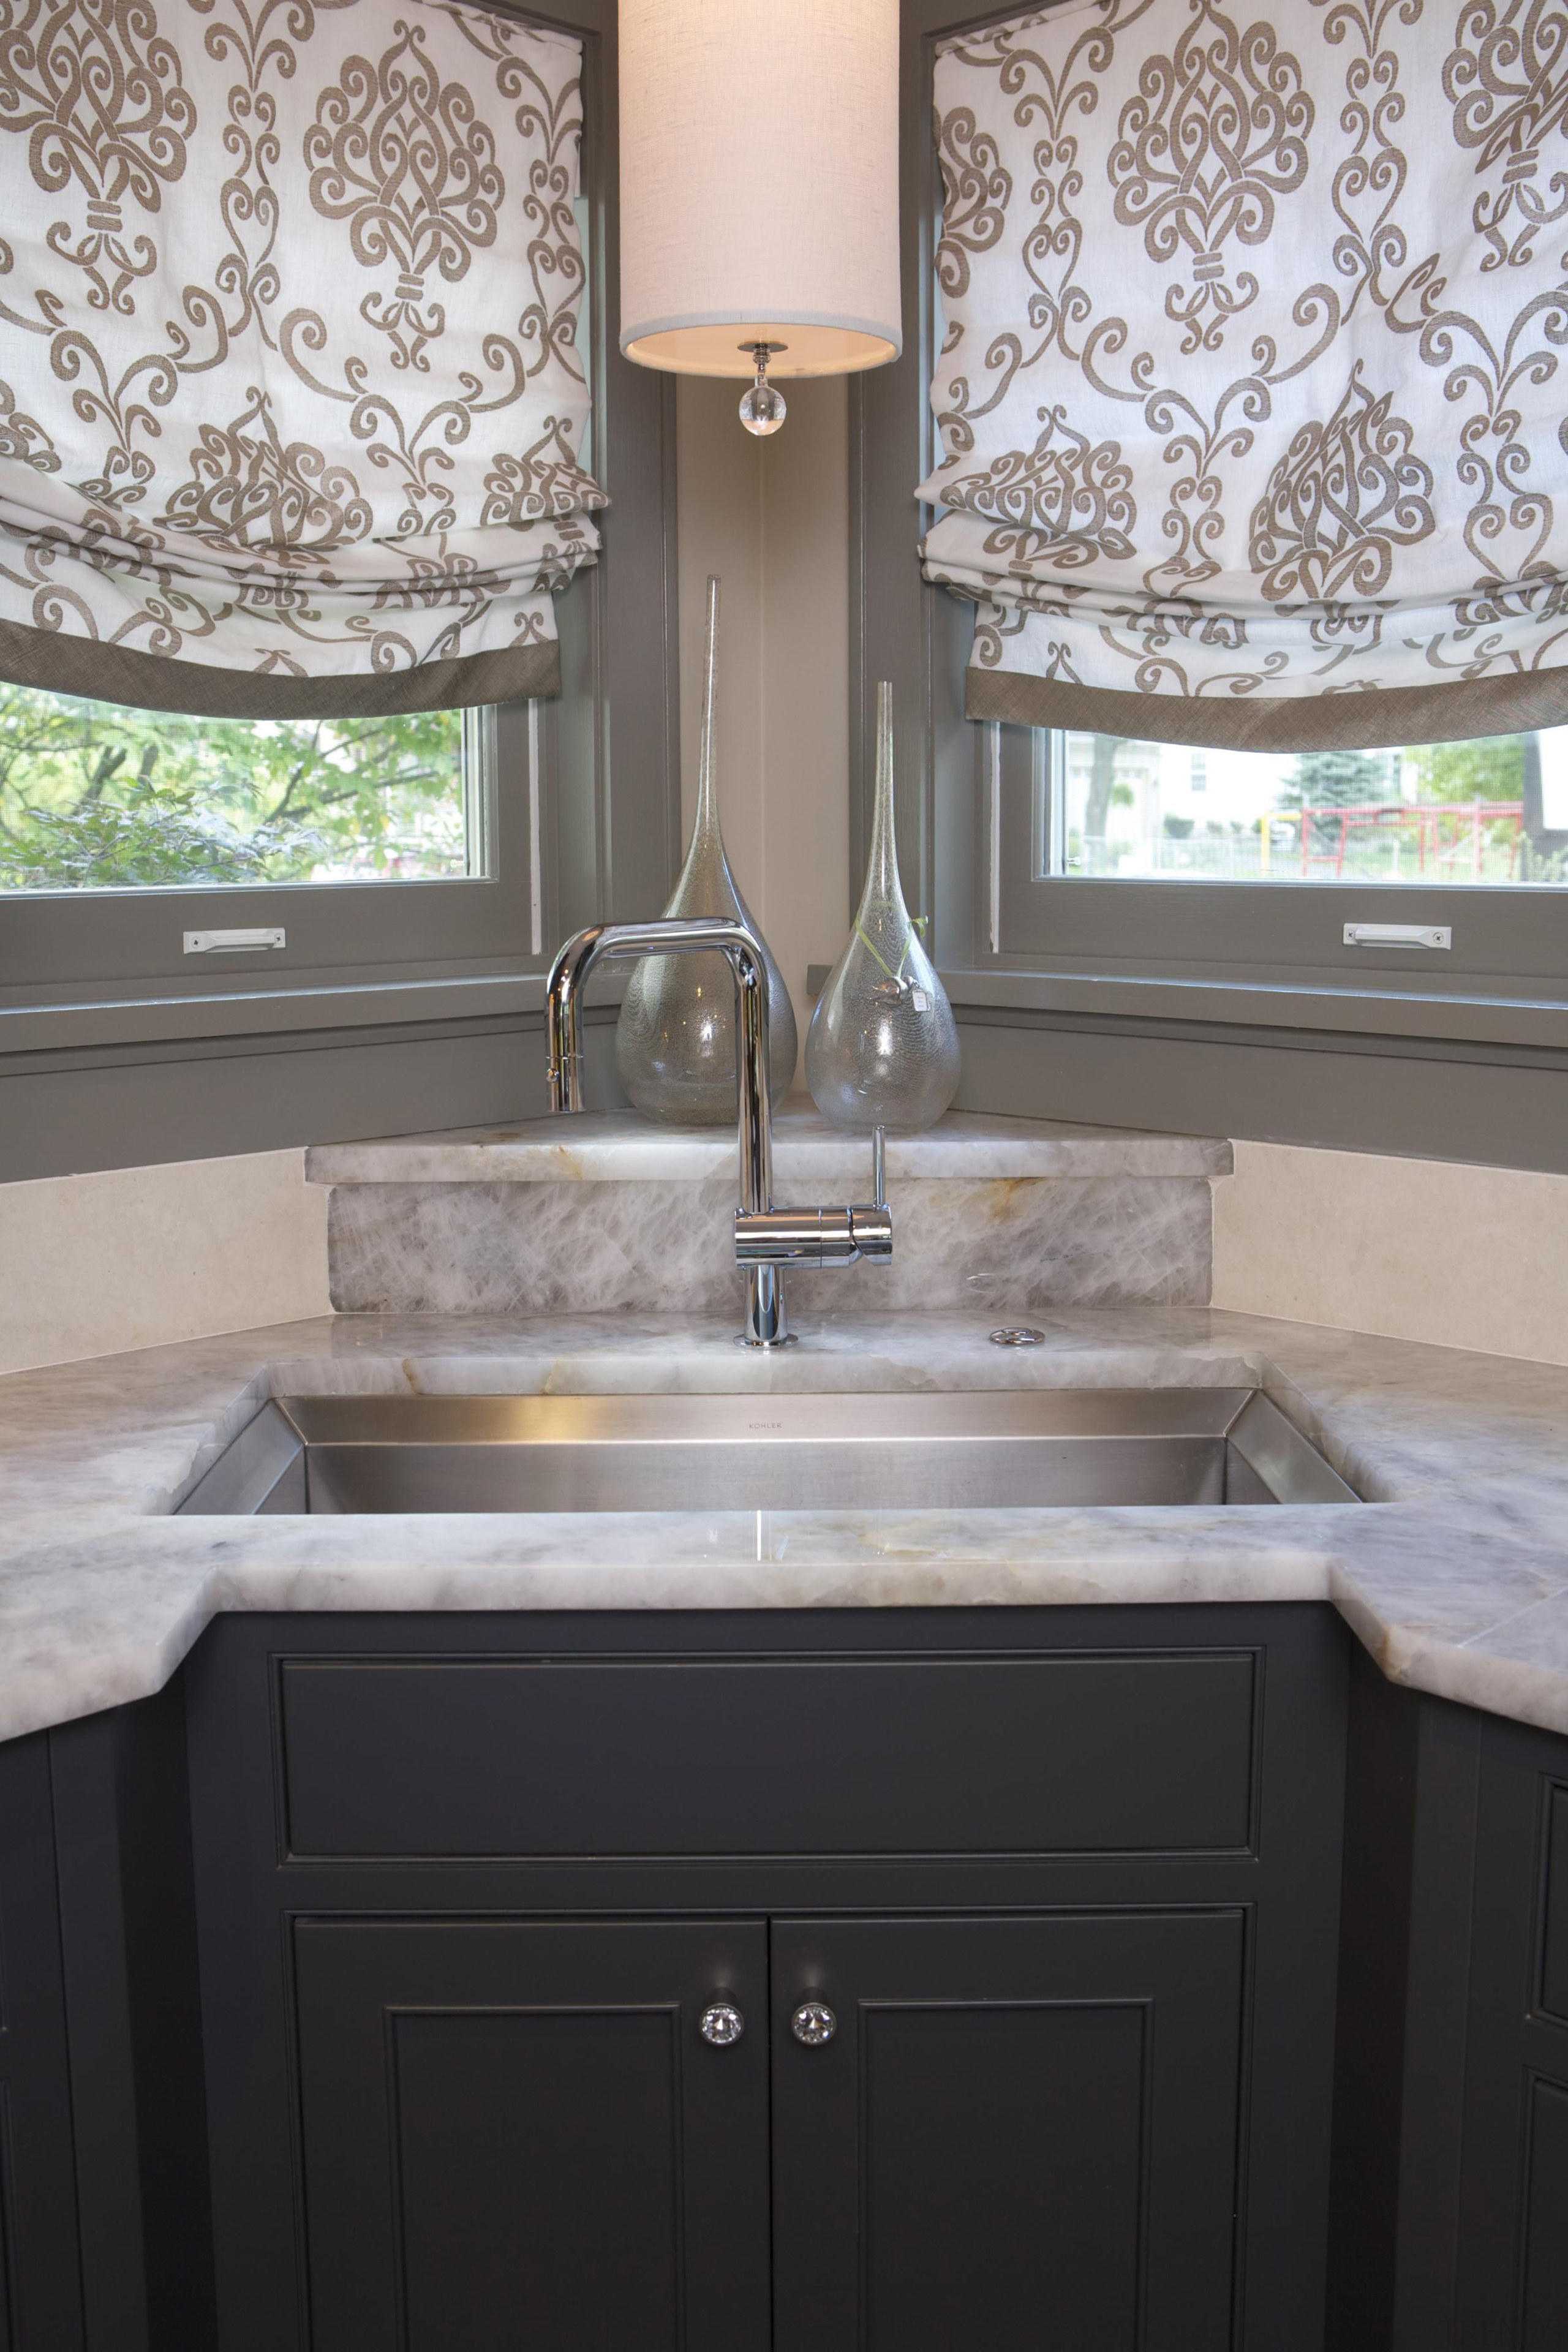 Historic Bungalow Renovaiton - Kitchen Sink Detail - bathroom, bathroom accessory, cabinetry, countertop, cuisine classique, floor, granite, home, interior design, kitchen, room, sink, tile, wall, gray, black